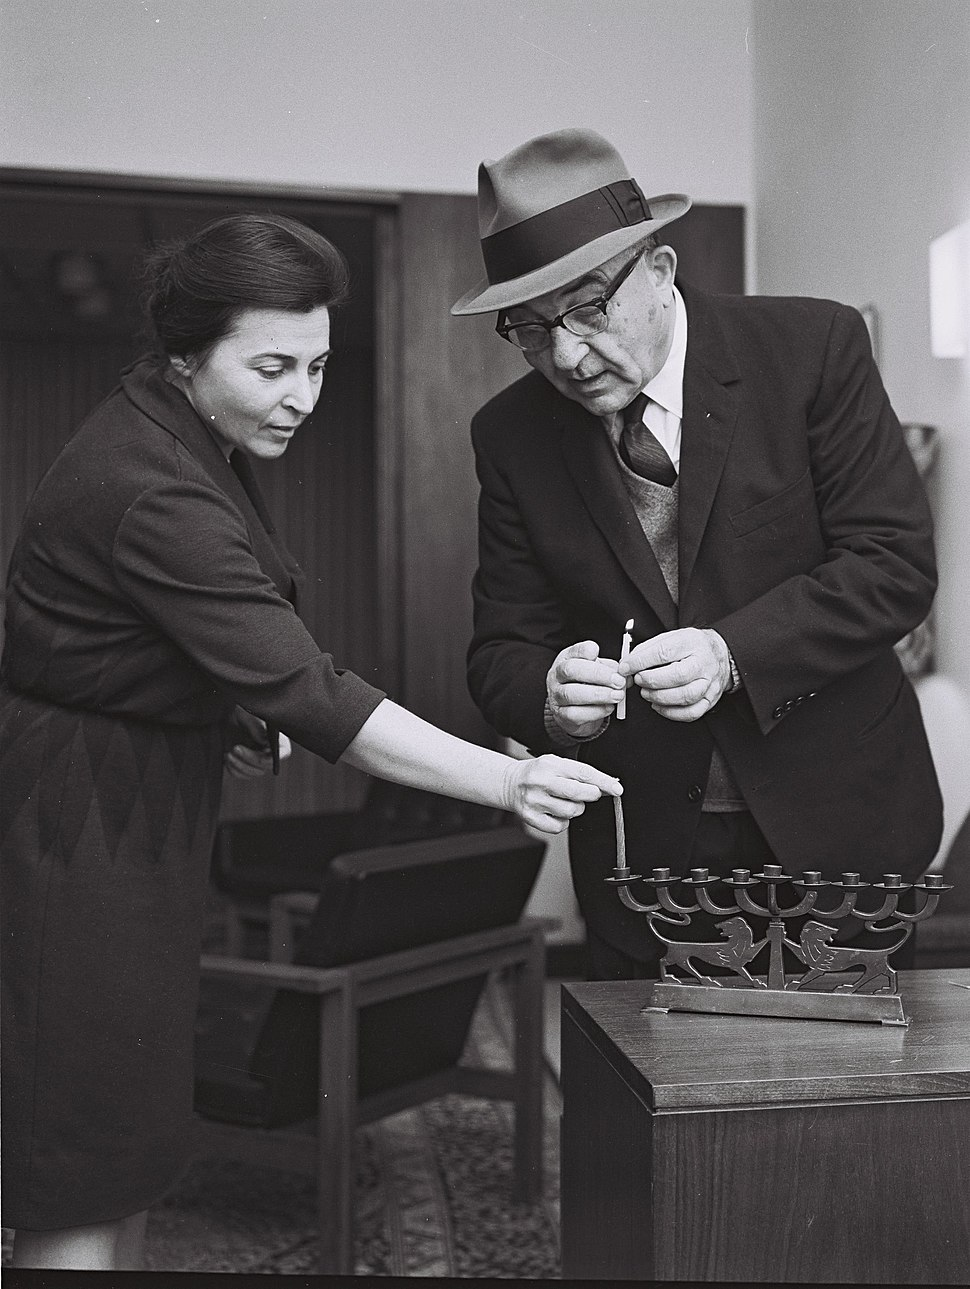 P.M. Levy Eshkol assisted by Mrs. Miriam Eshkol lighting the first Hanuka candle